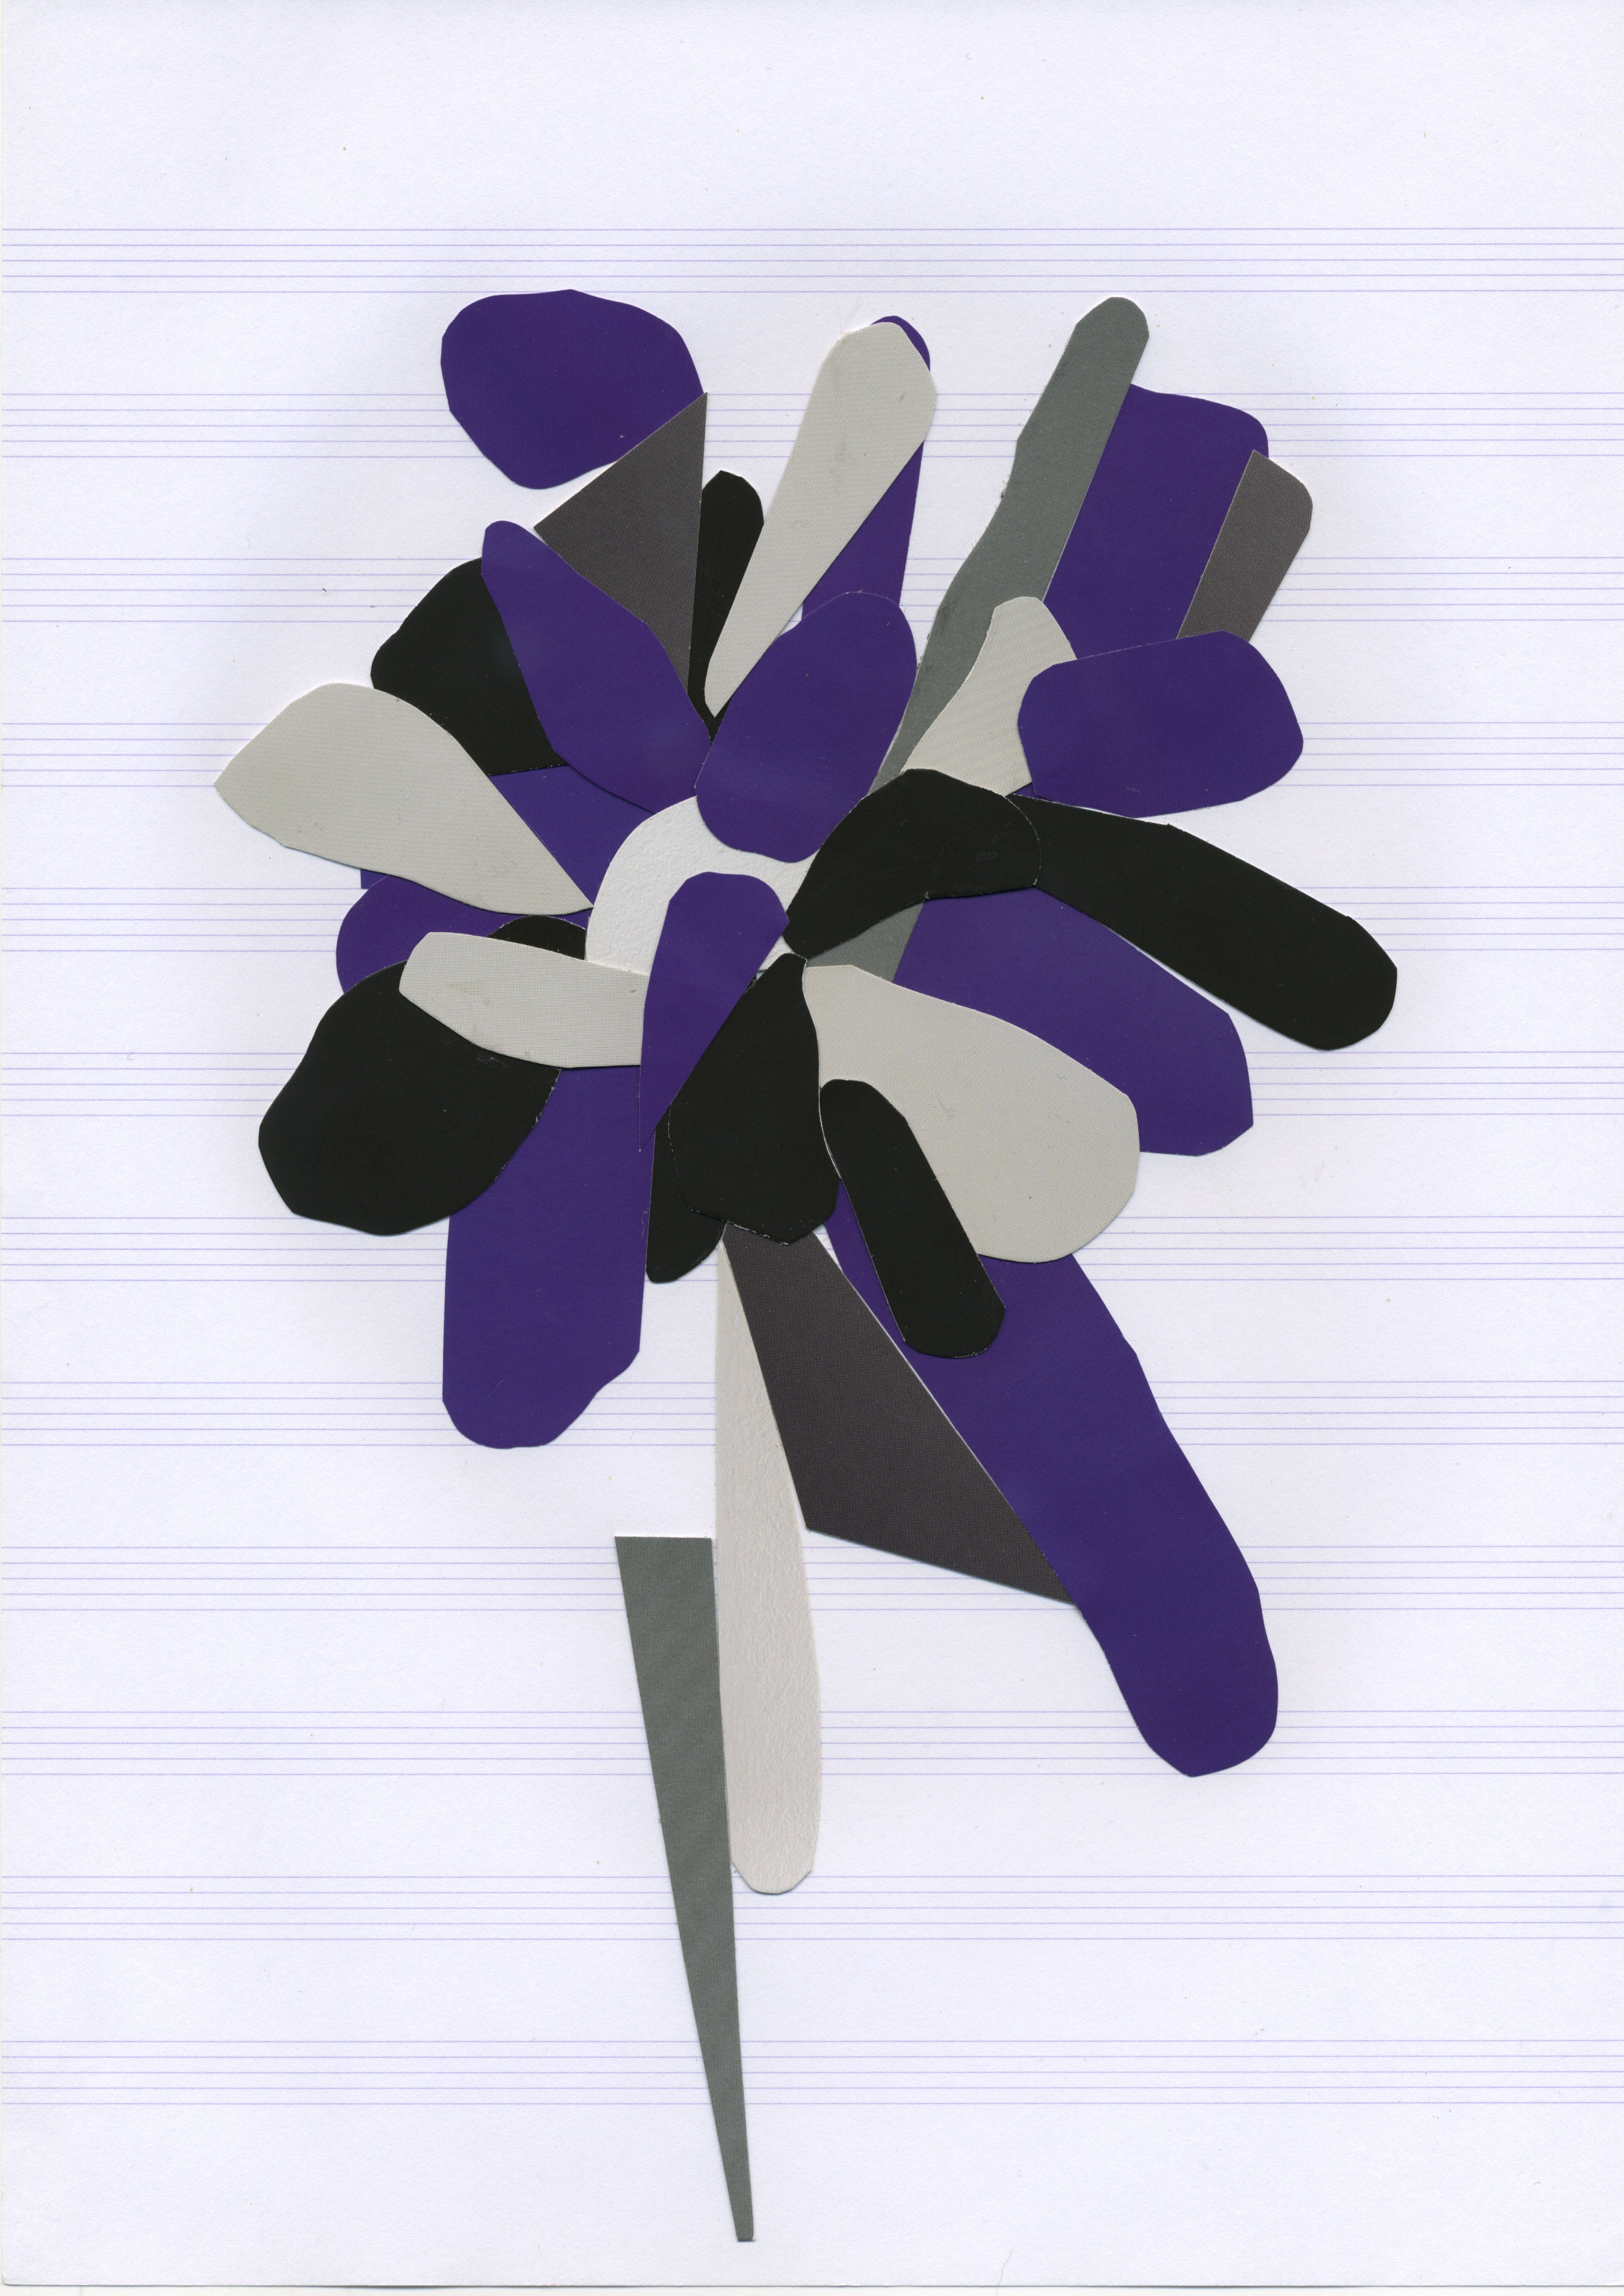 Copy of As if pruning a tree, after Matisse